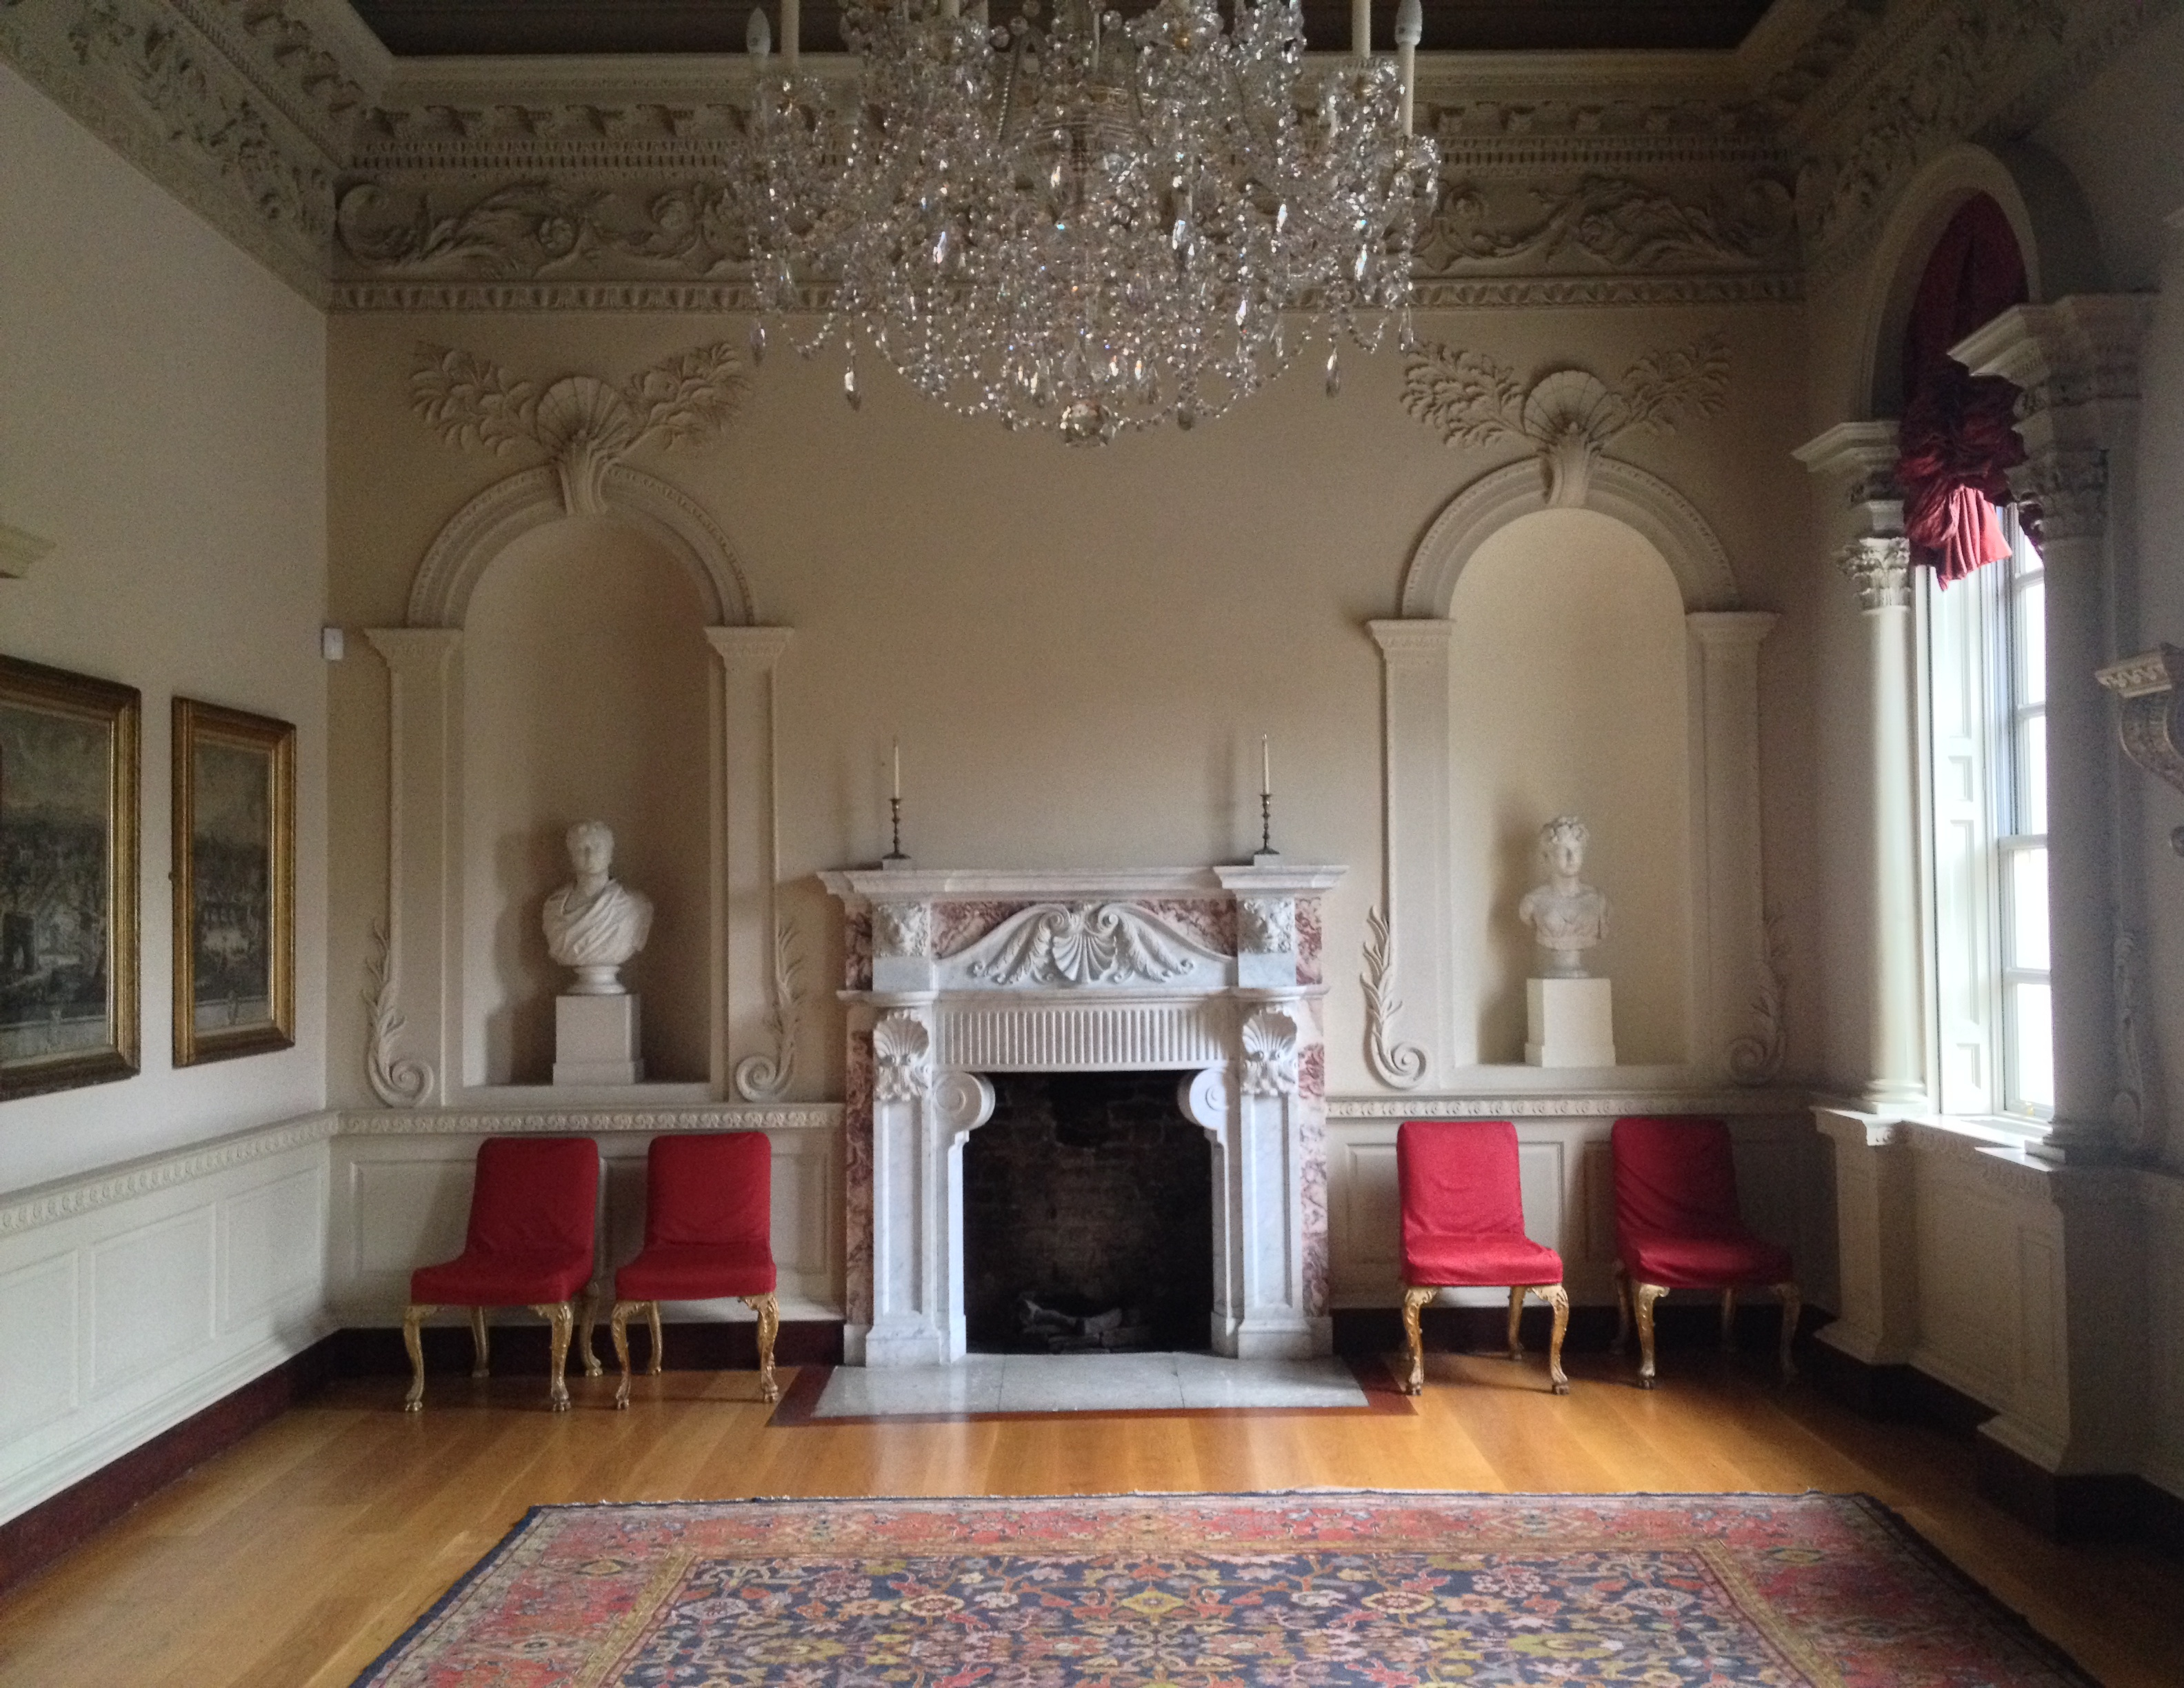 Beautiful Room the most beautiful room in ireland? « the irish aesthete